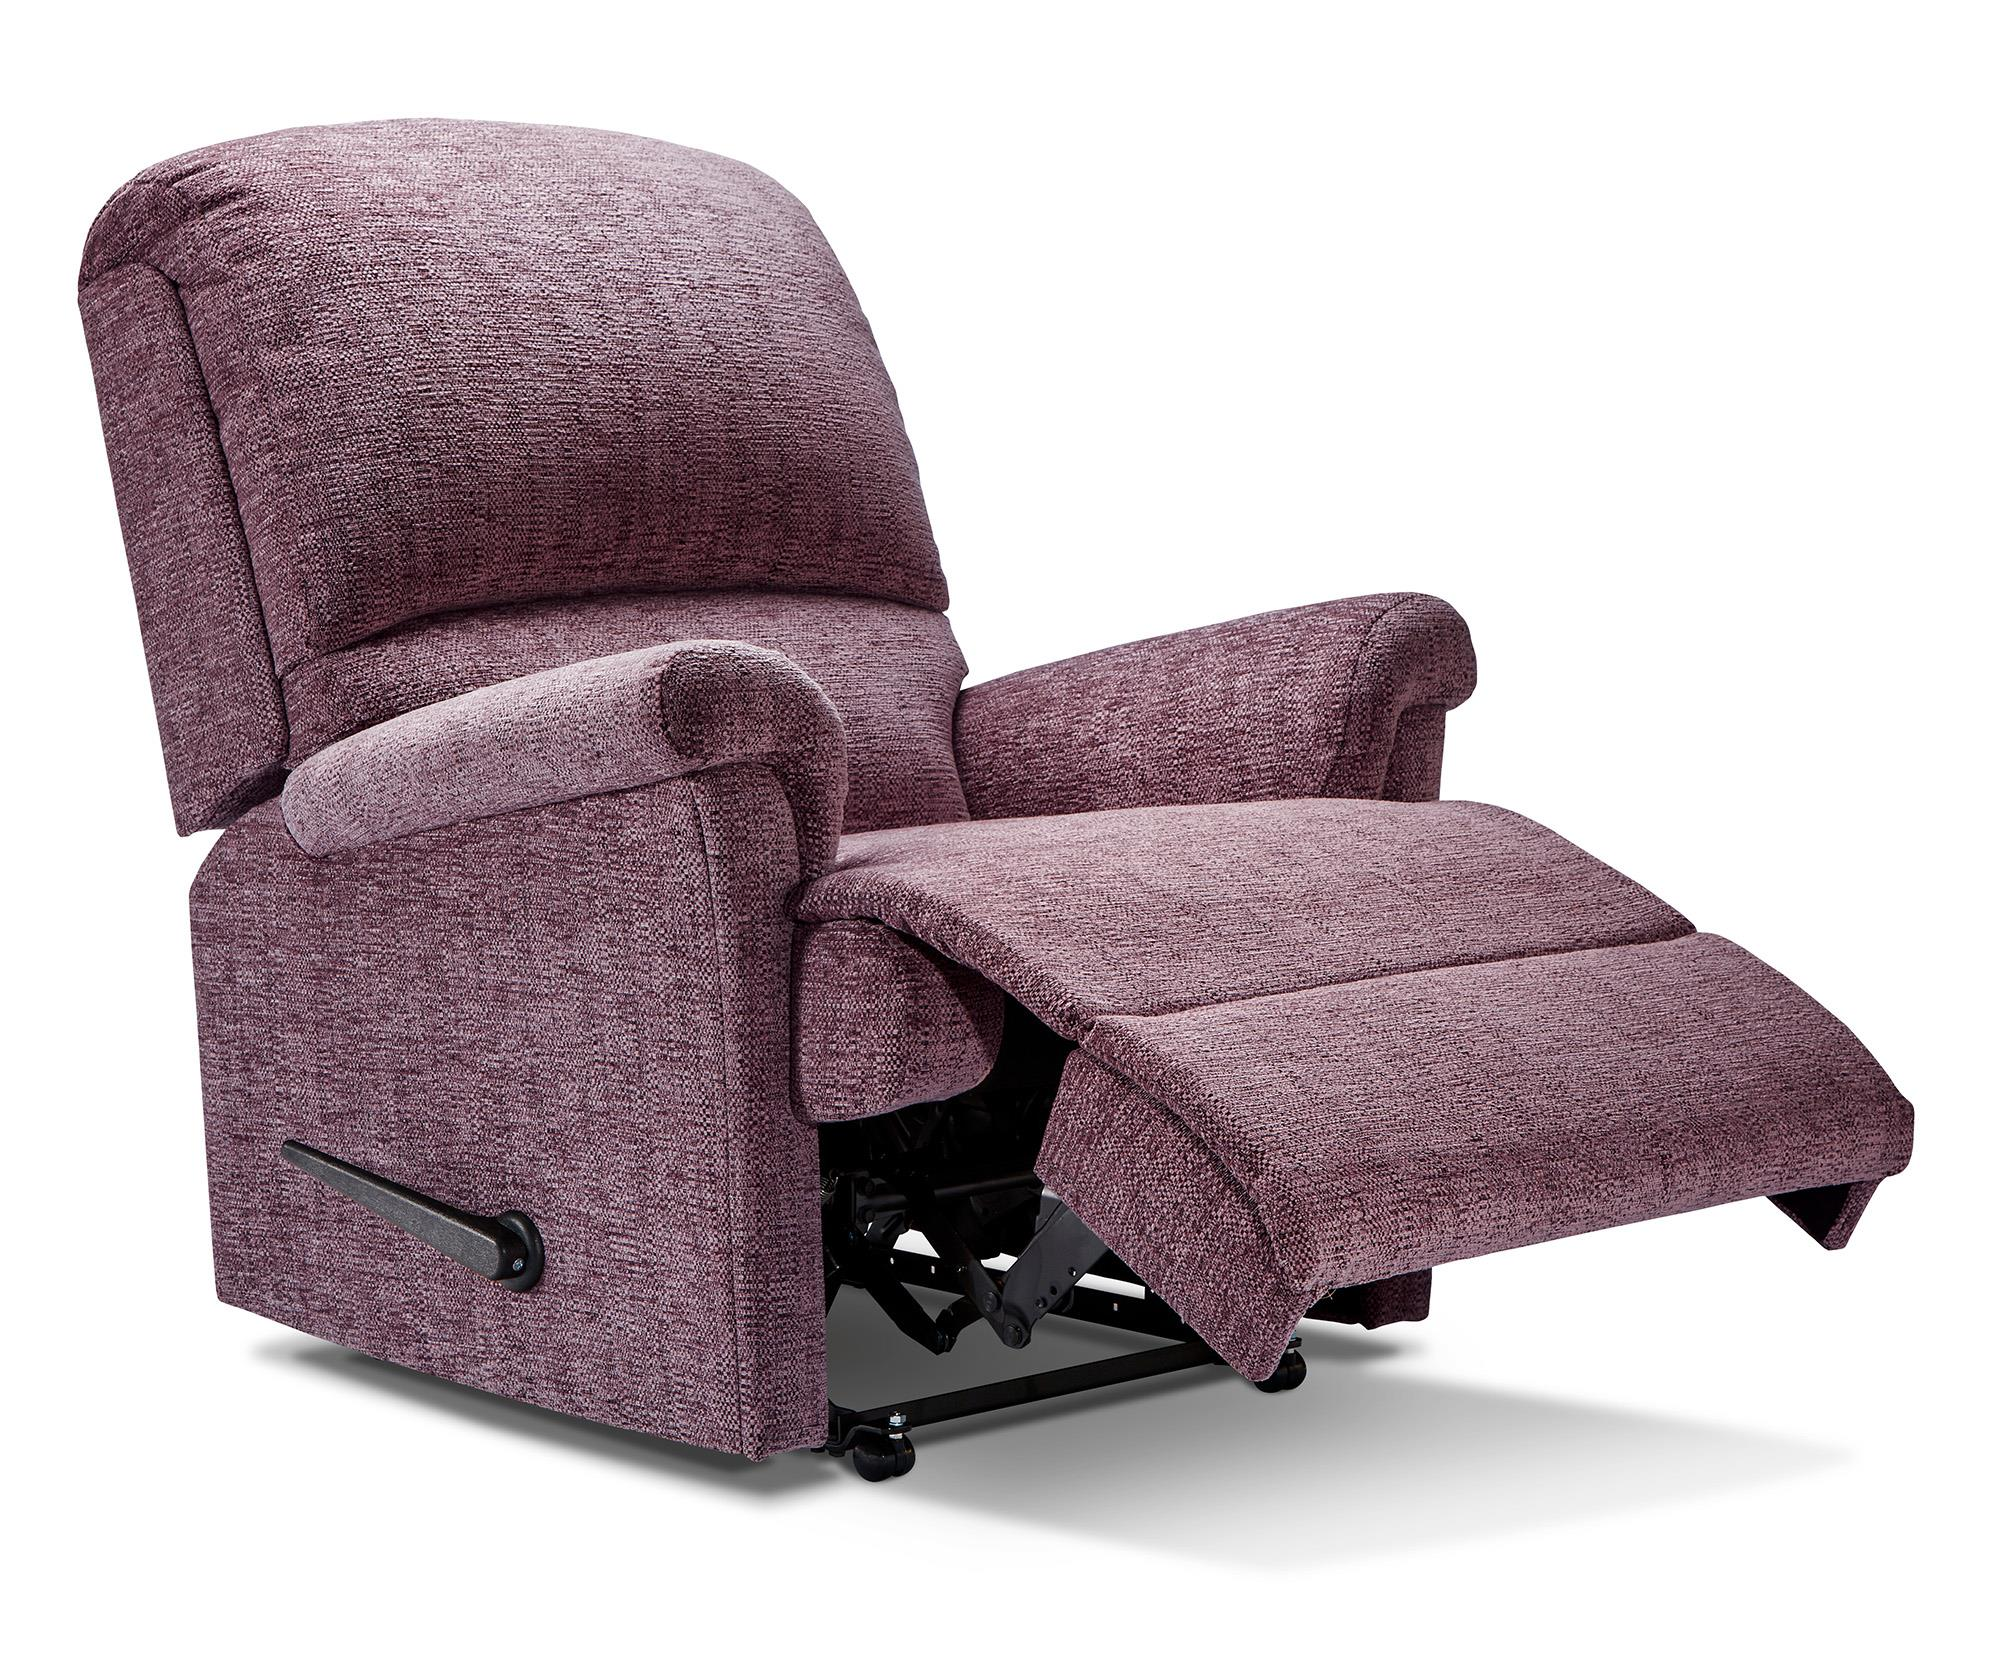 Nevada Recliner Chair - by Sherborne